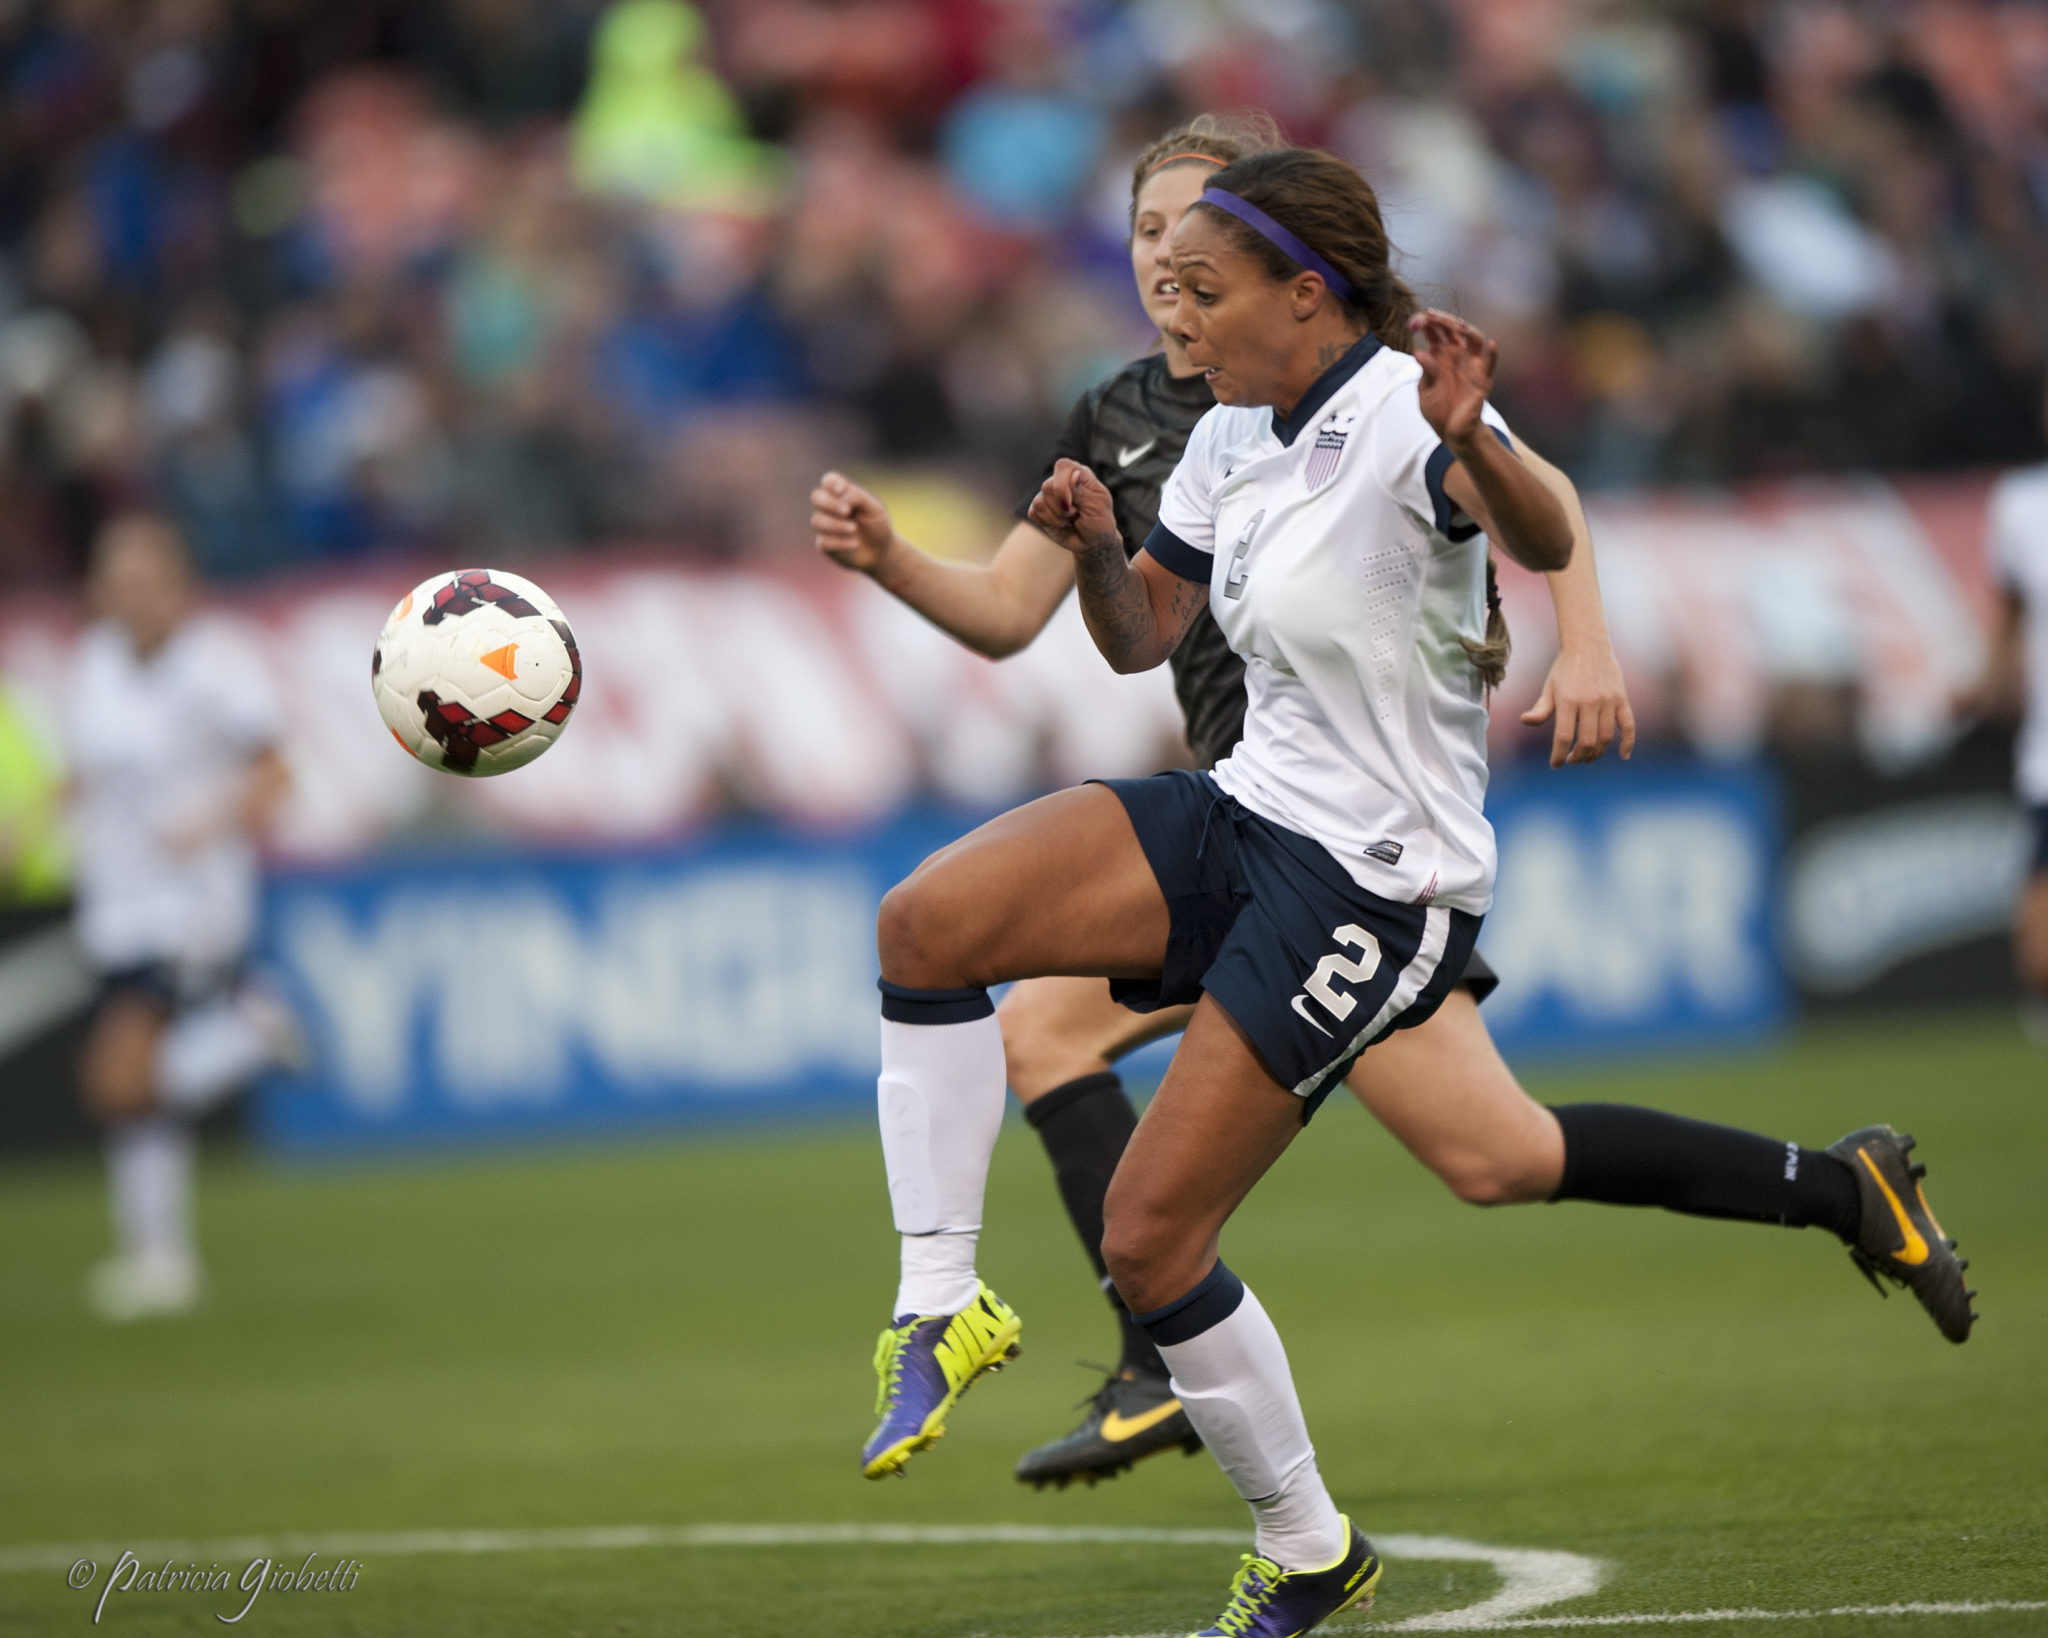 Sydney Leroux scored for the U.S. on Wednesday in a 1-1 draw with New Zealand. (Photo Copyright Patricia Giobetti for The Equalizer)